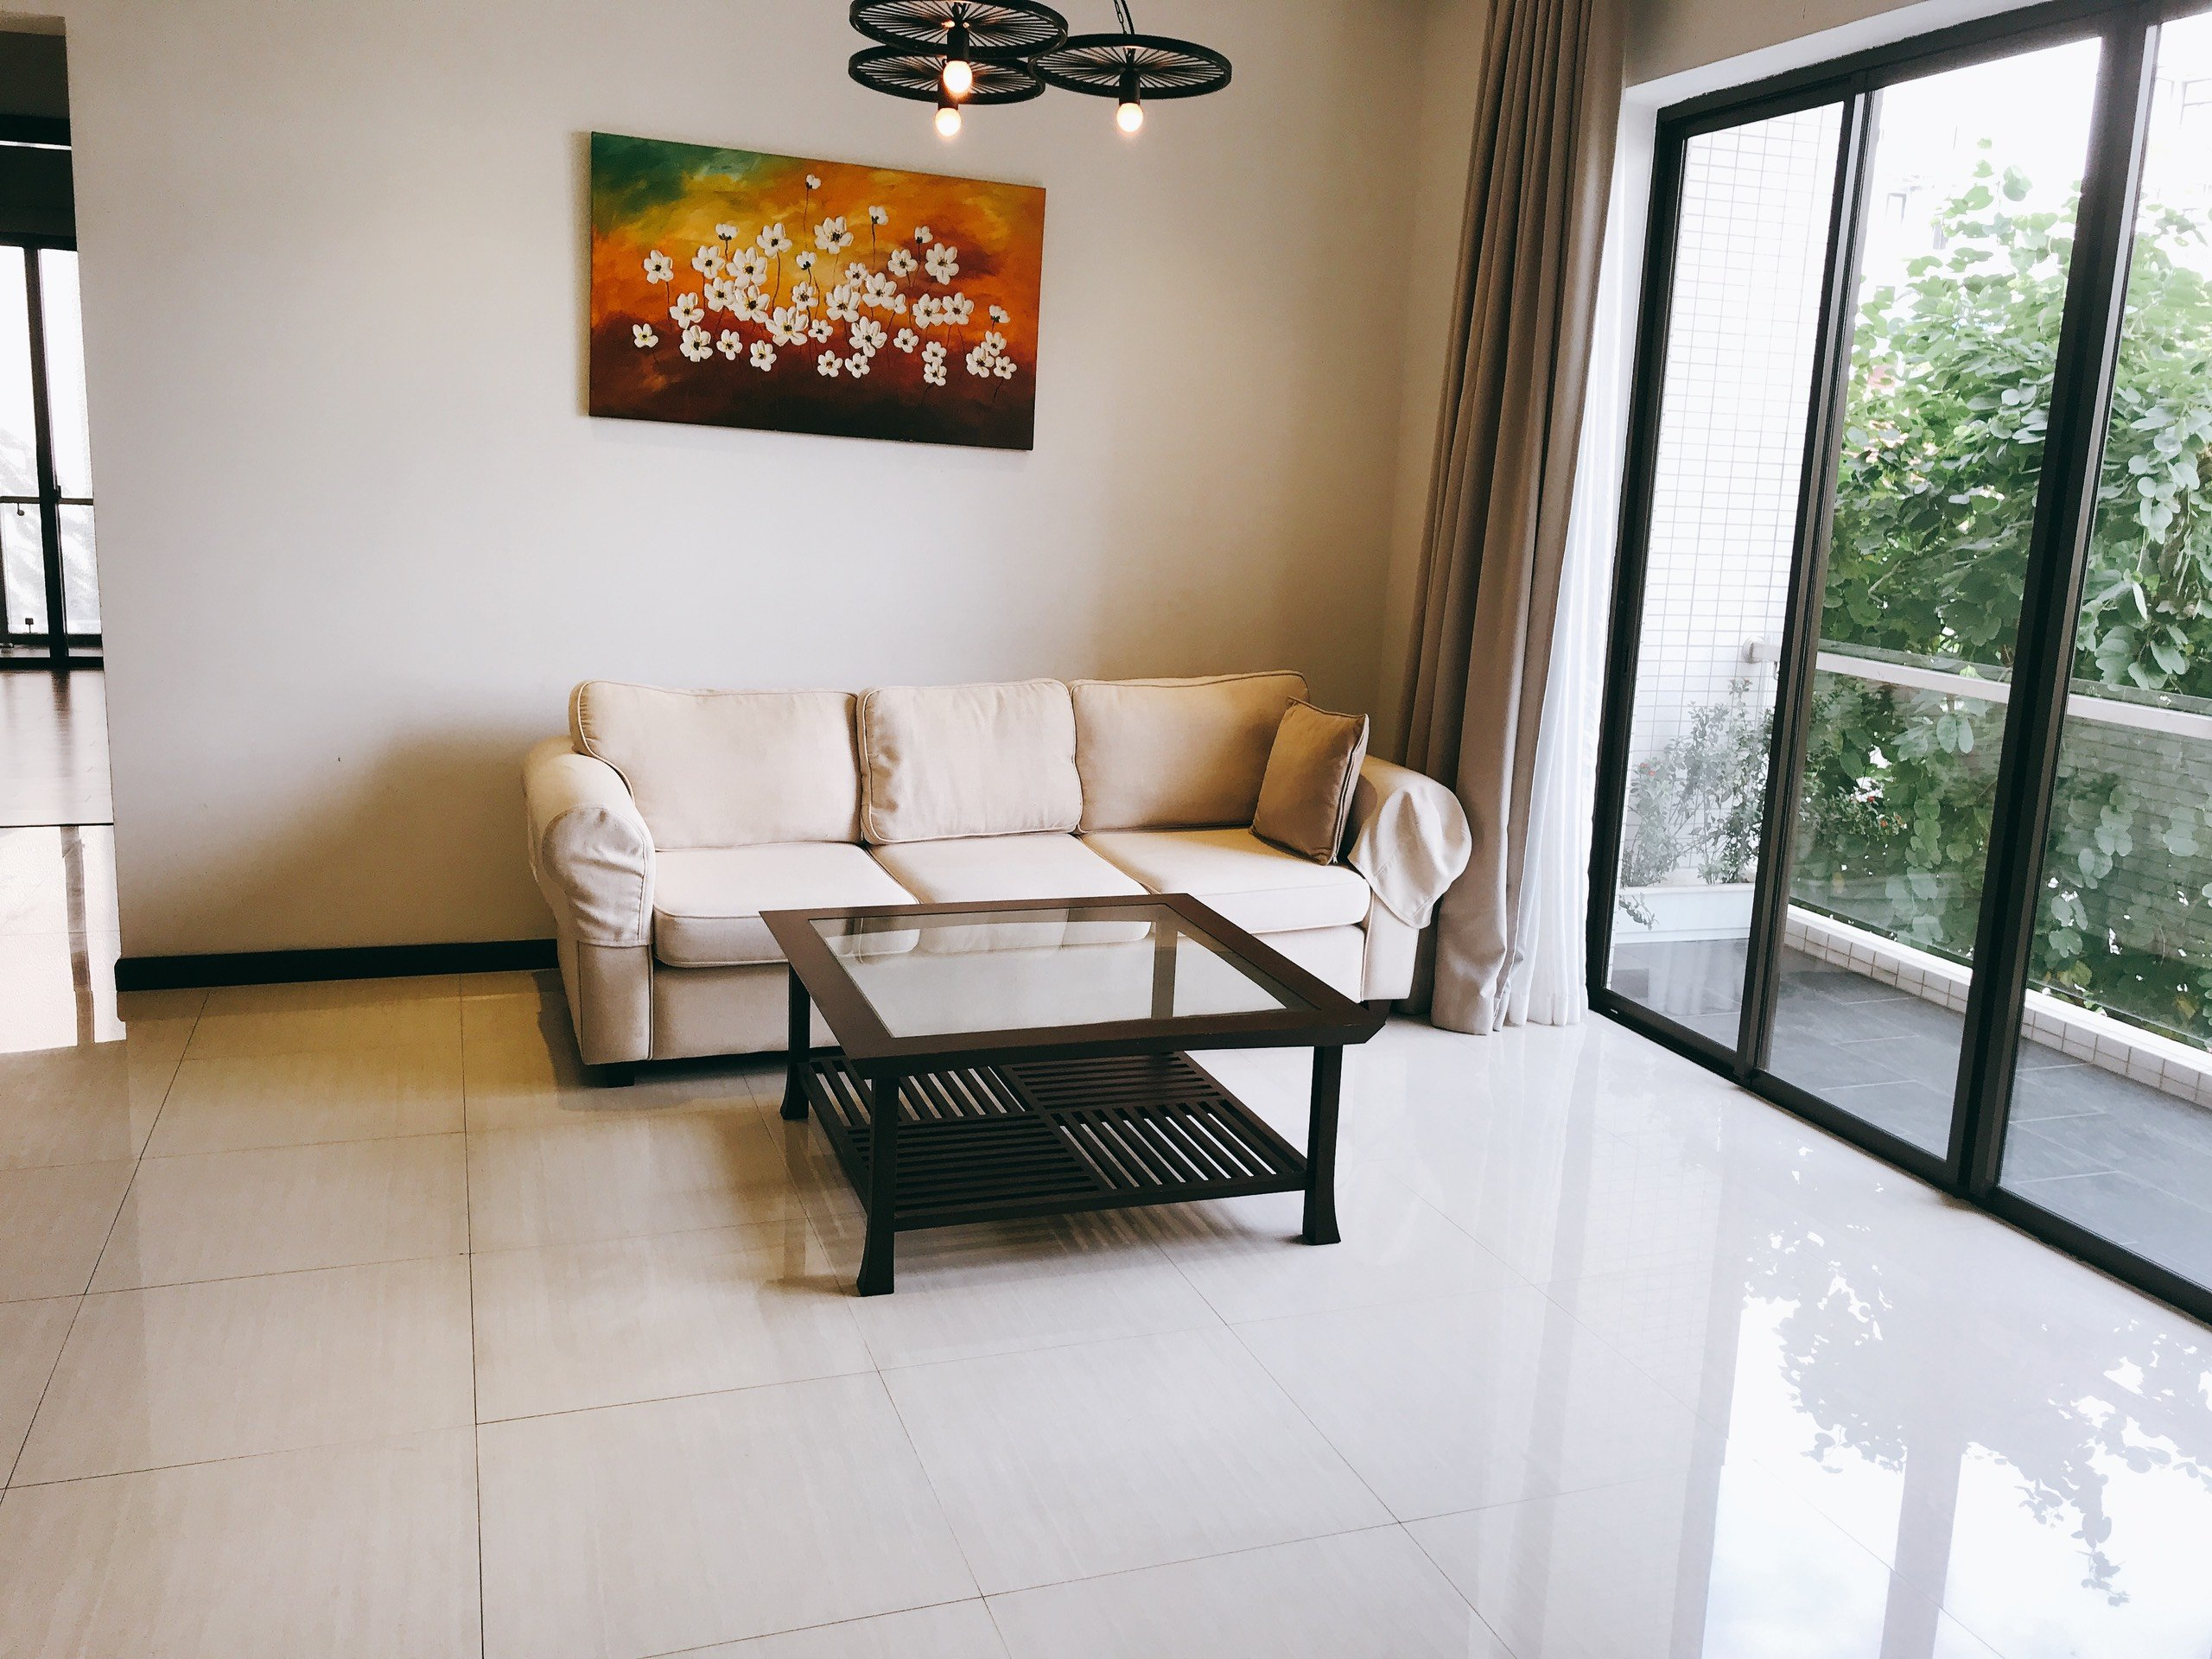 2 bedroom Apartment for rent near An Thuong